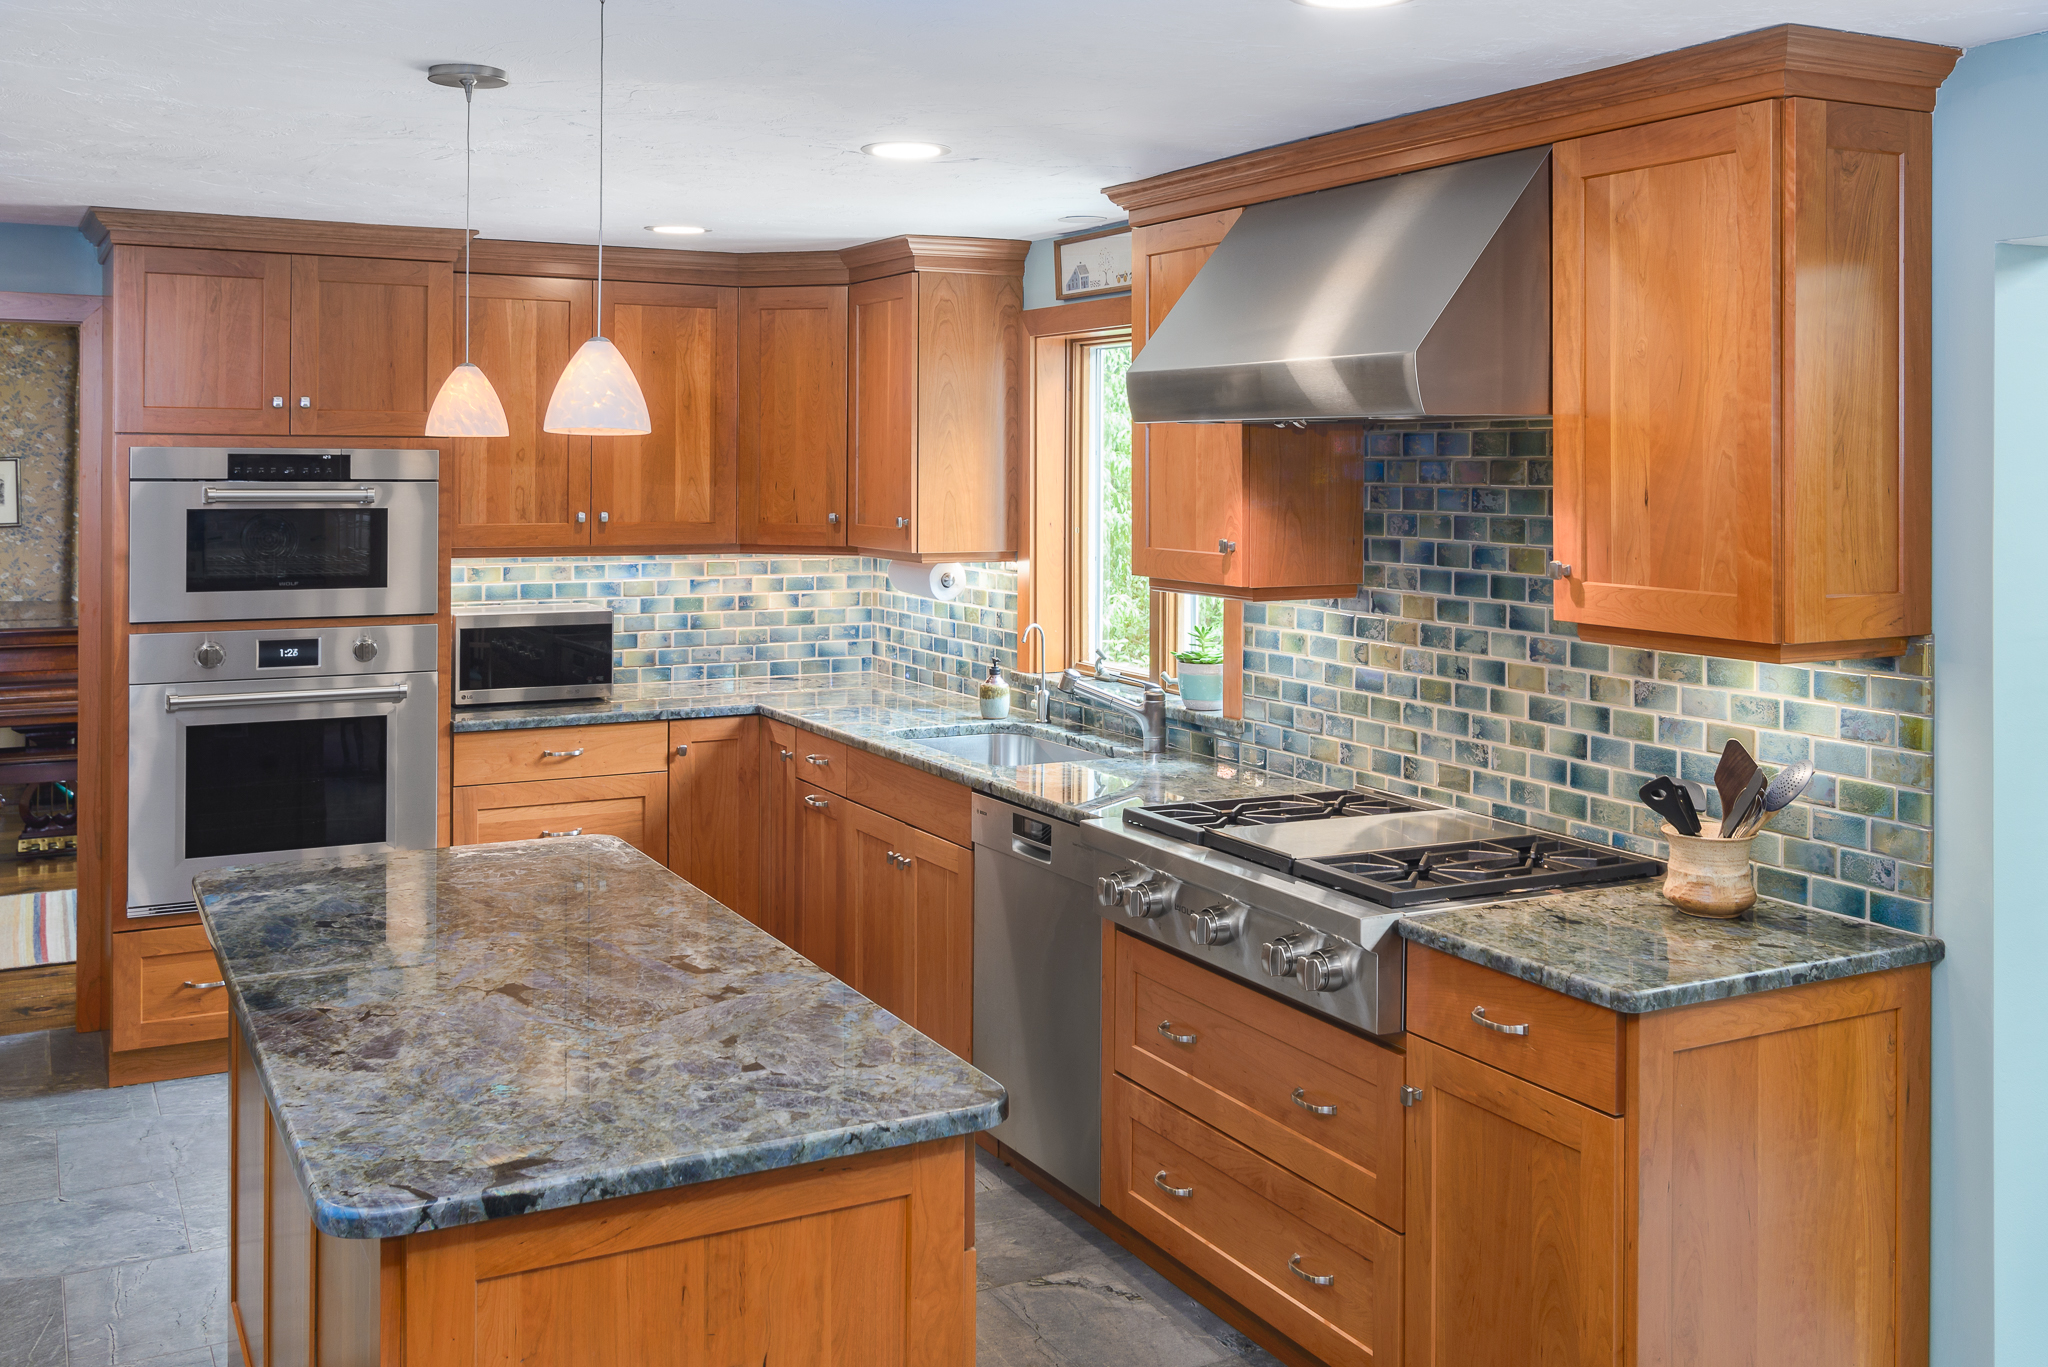 kitchen remodle countertop tile ocean inspired remodel in bolton ma associates massachusetts remodeling